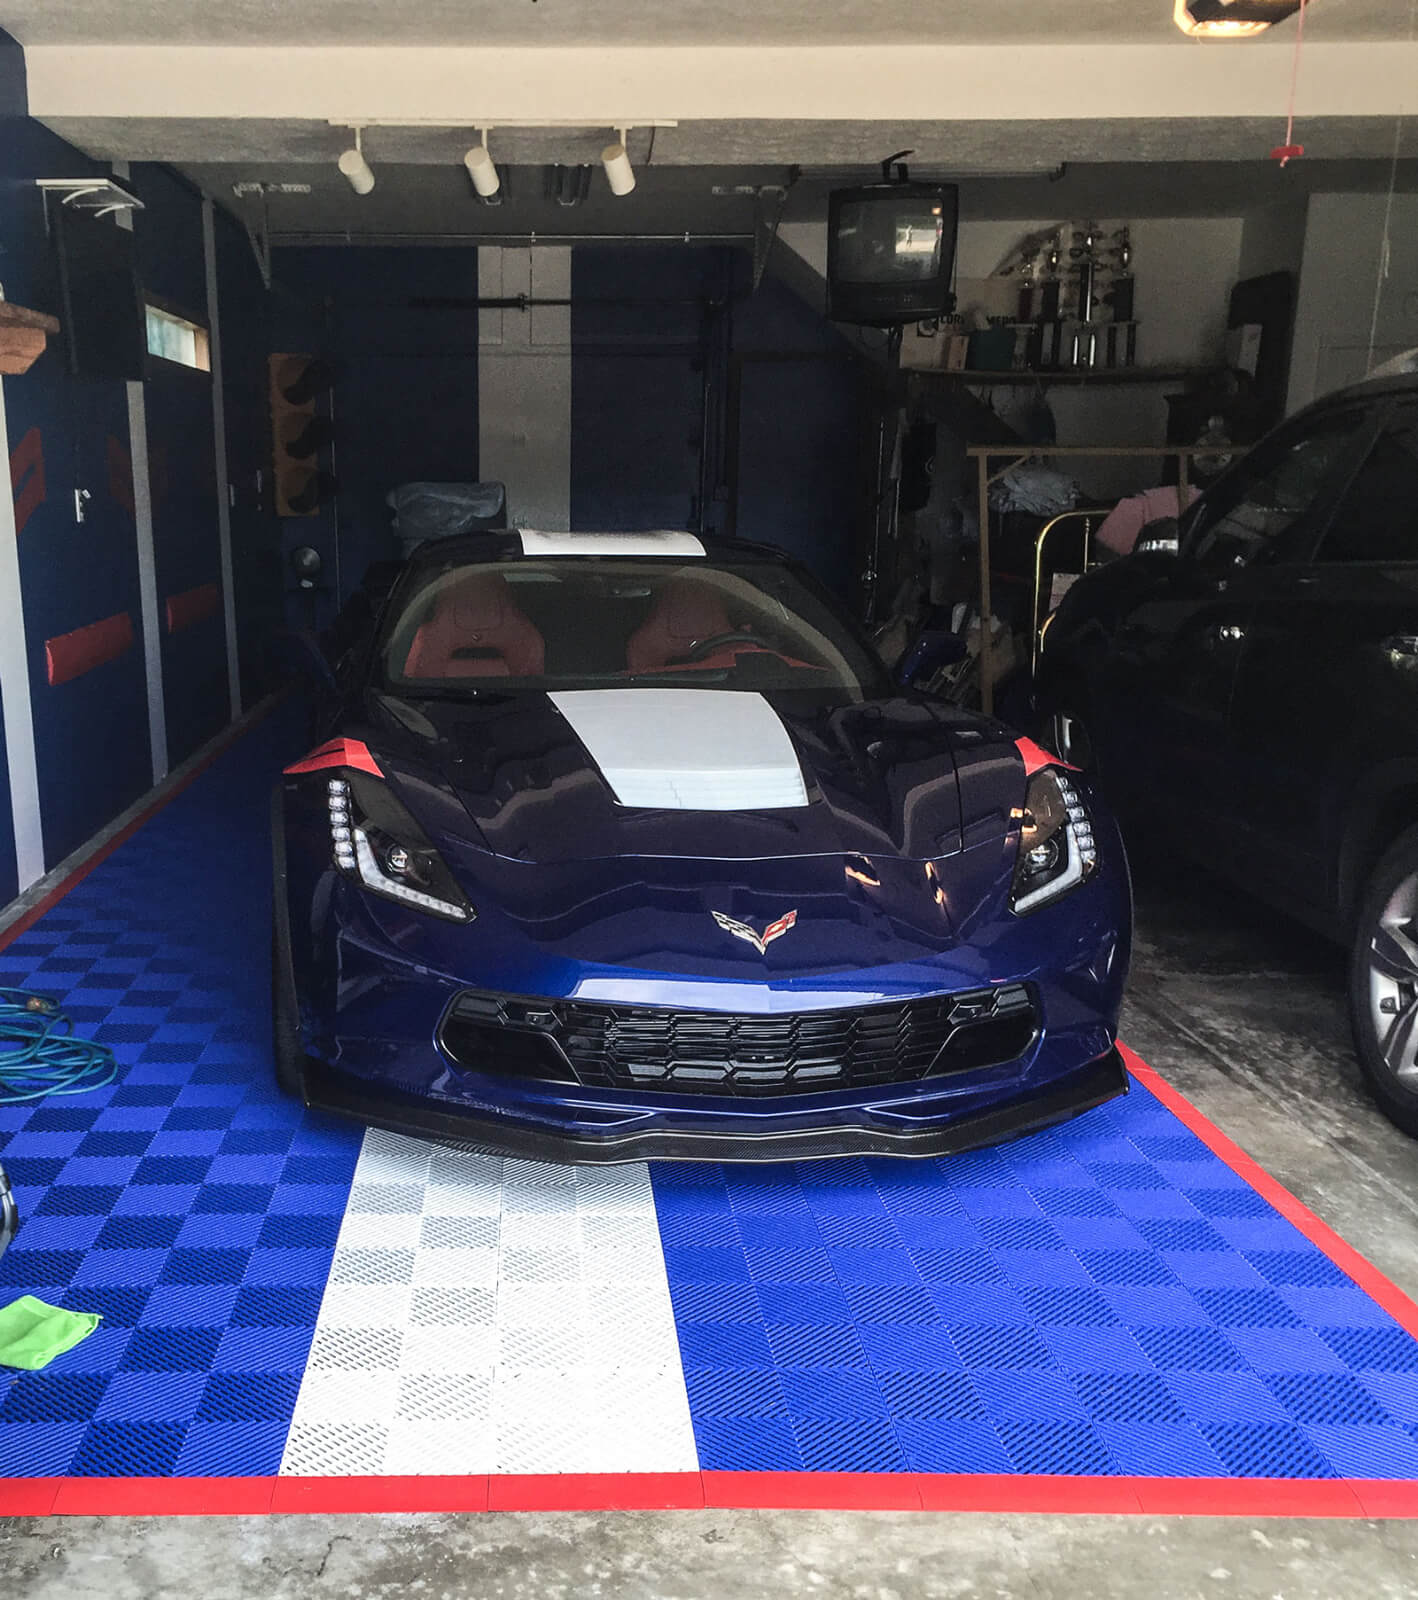 Free-Flow blue and white with red edging for this Corvette